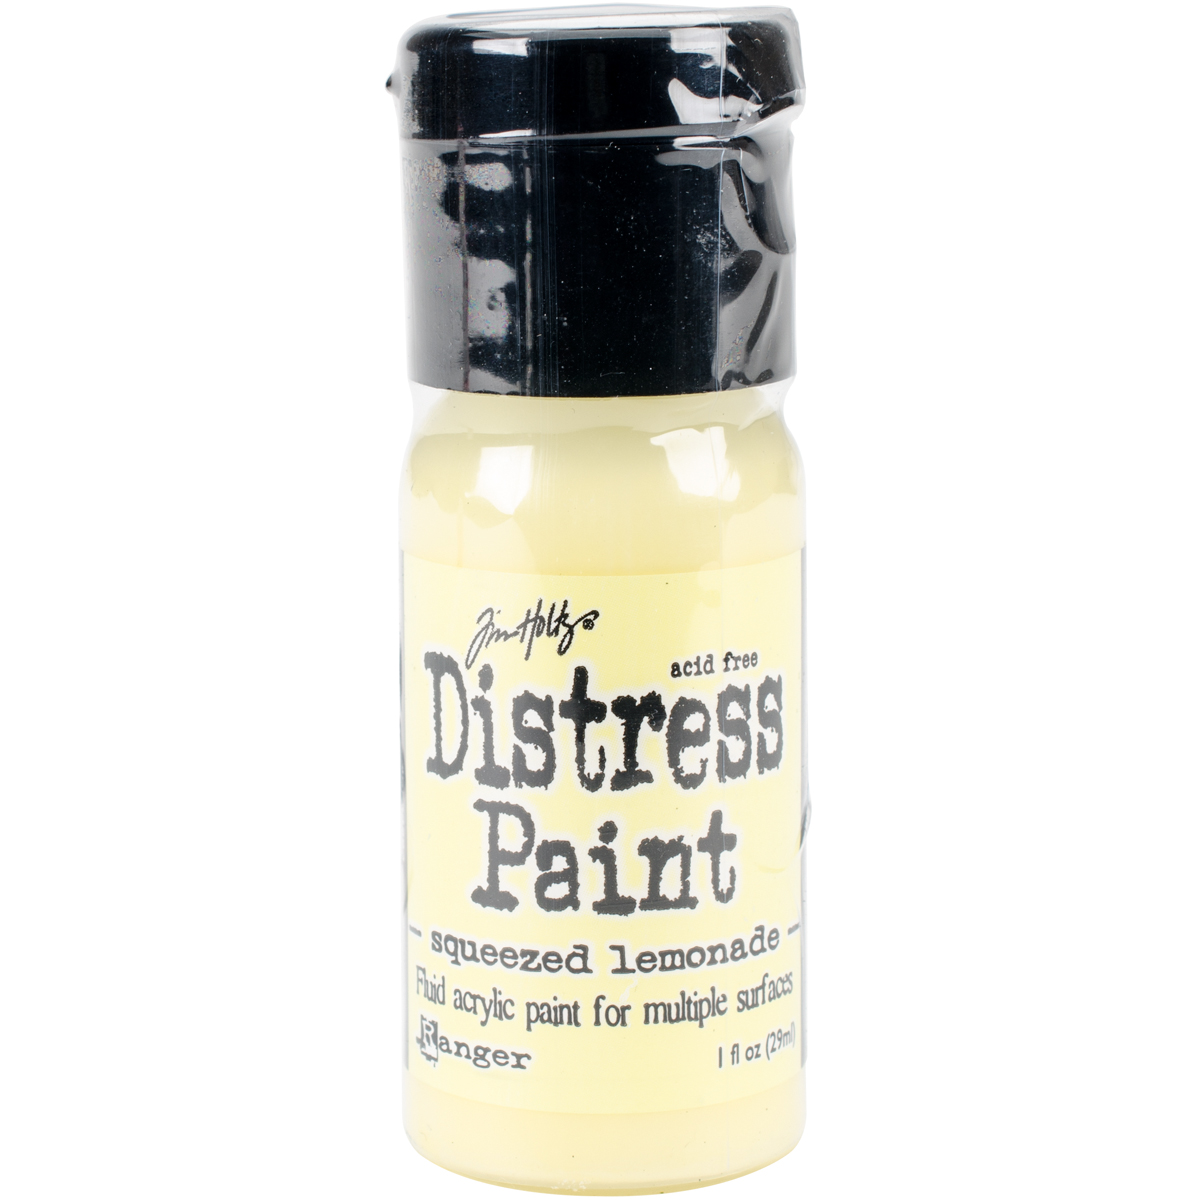 Squeezed lemonade distress paint